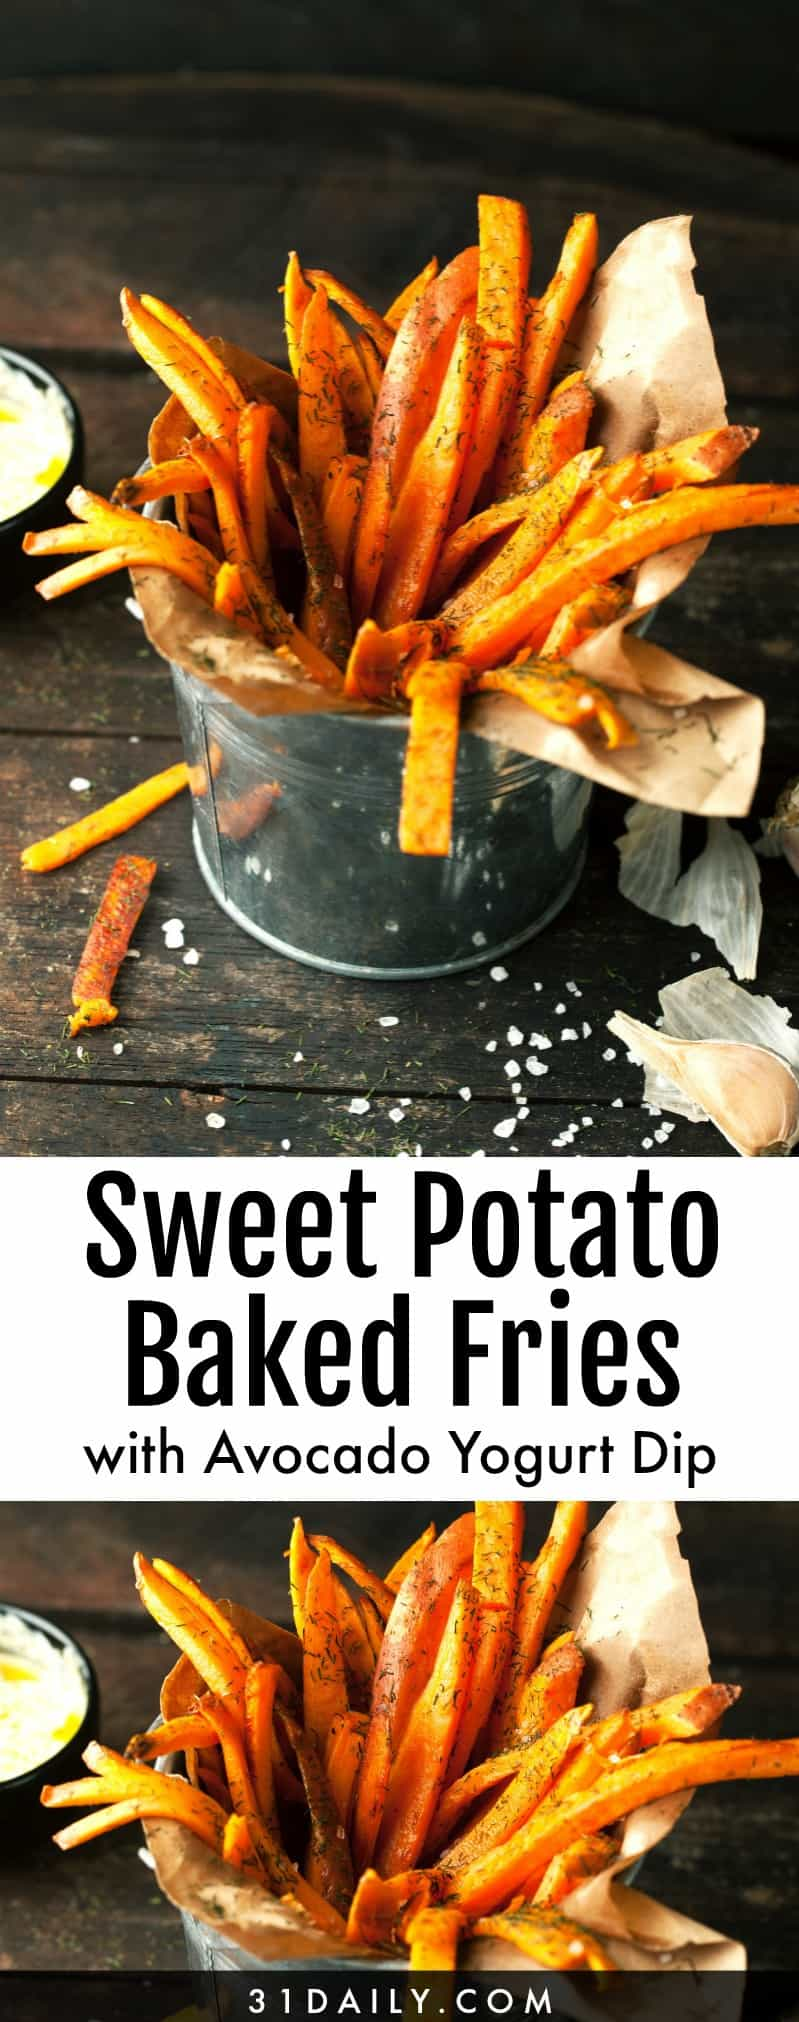 Baked Sweet Potato Fries with Avocado Greek Yogurt Dip | 31Daily.com